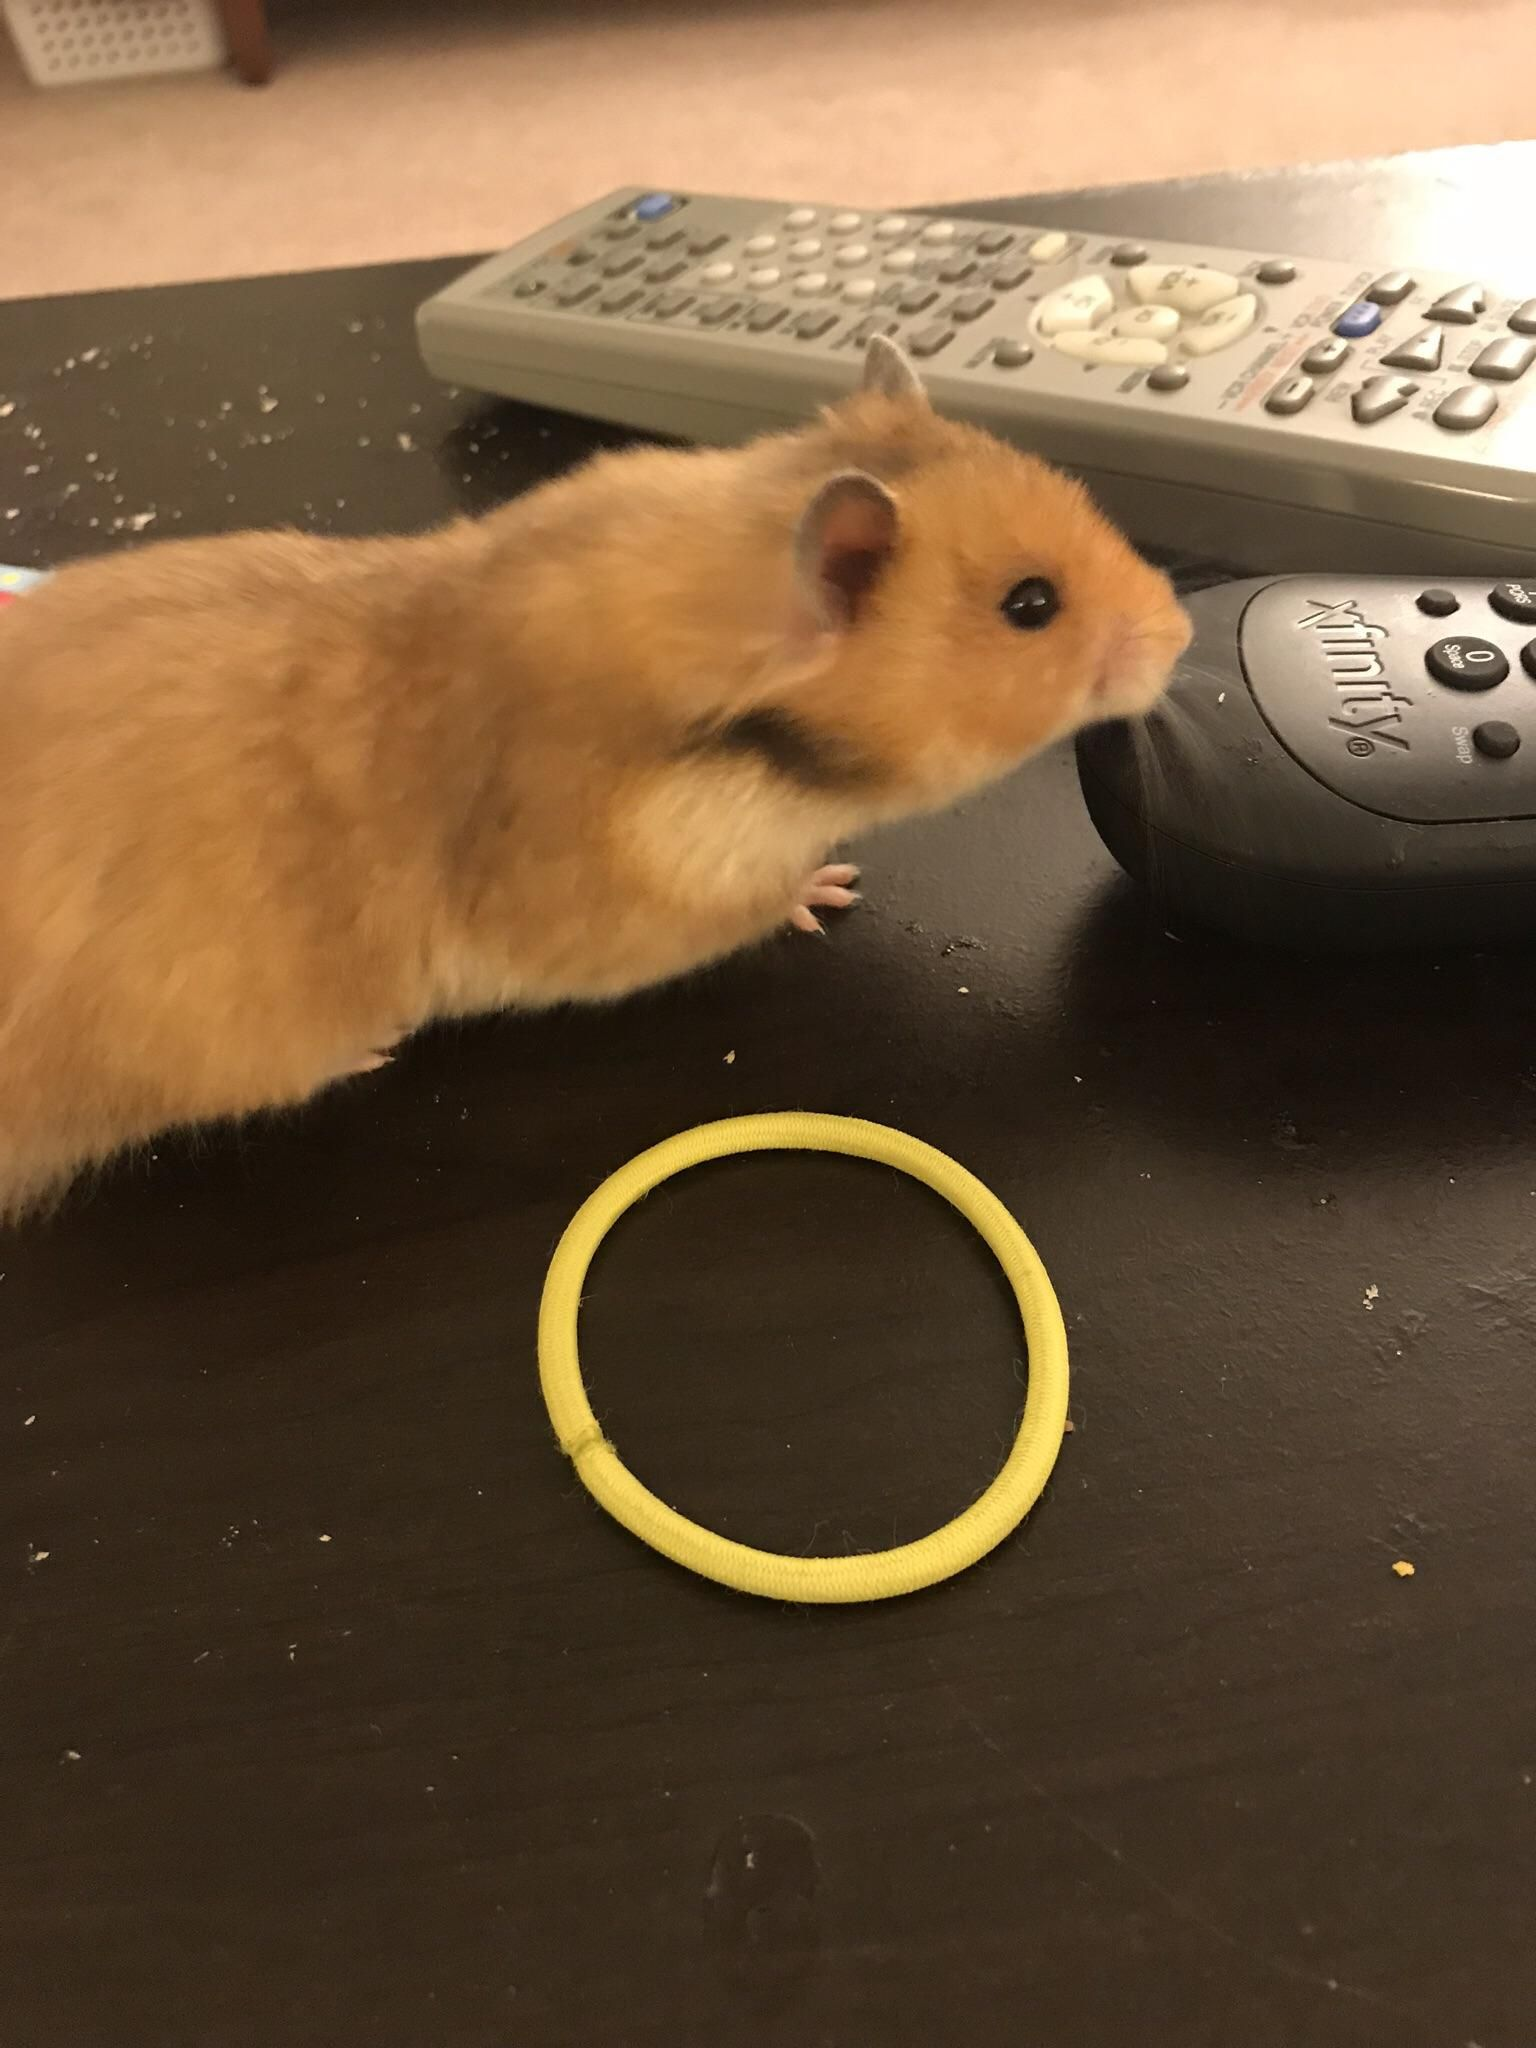 Mom Can I Change The Channel Http Ift Tt 2eluapa Hamster Cute Hamsters Aww